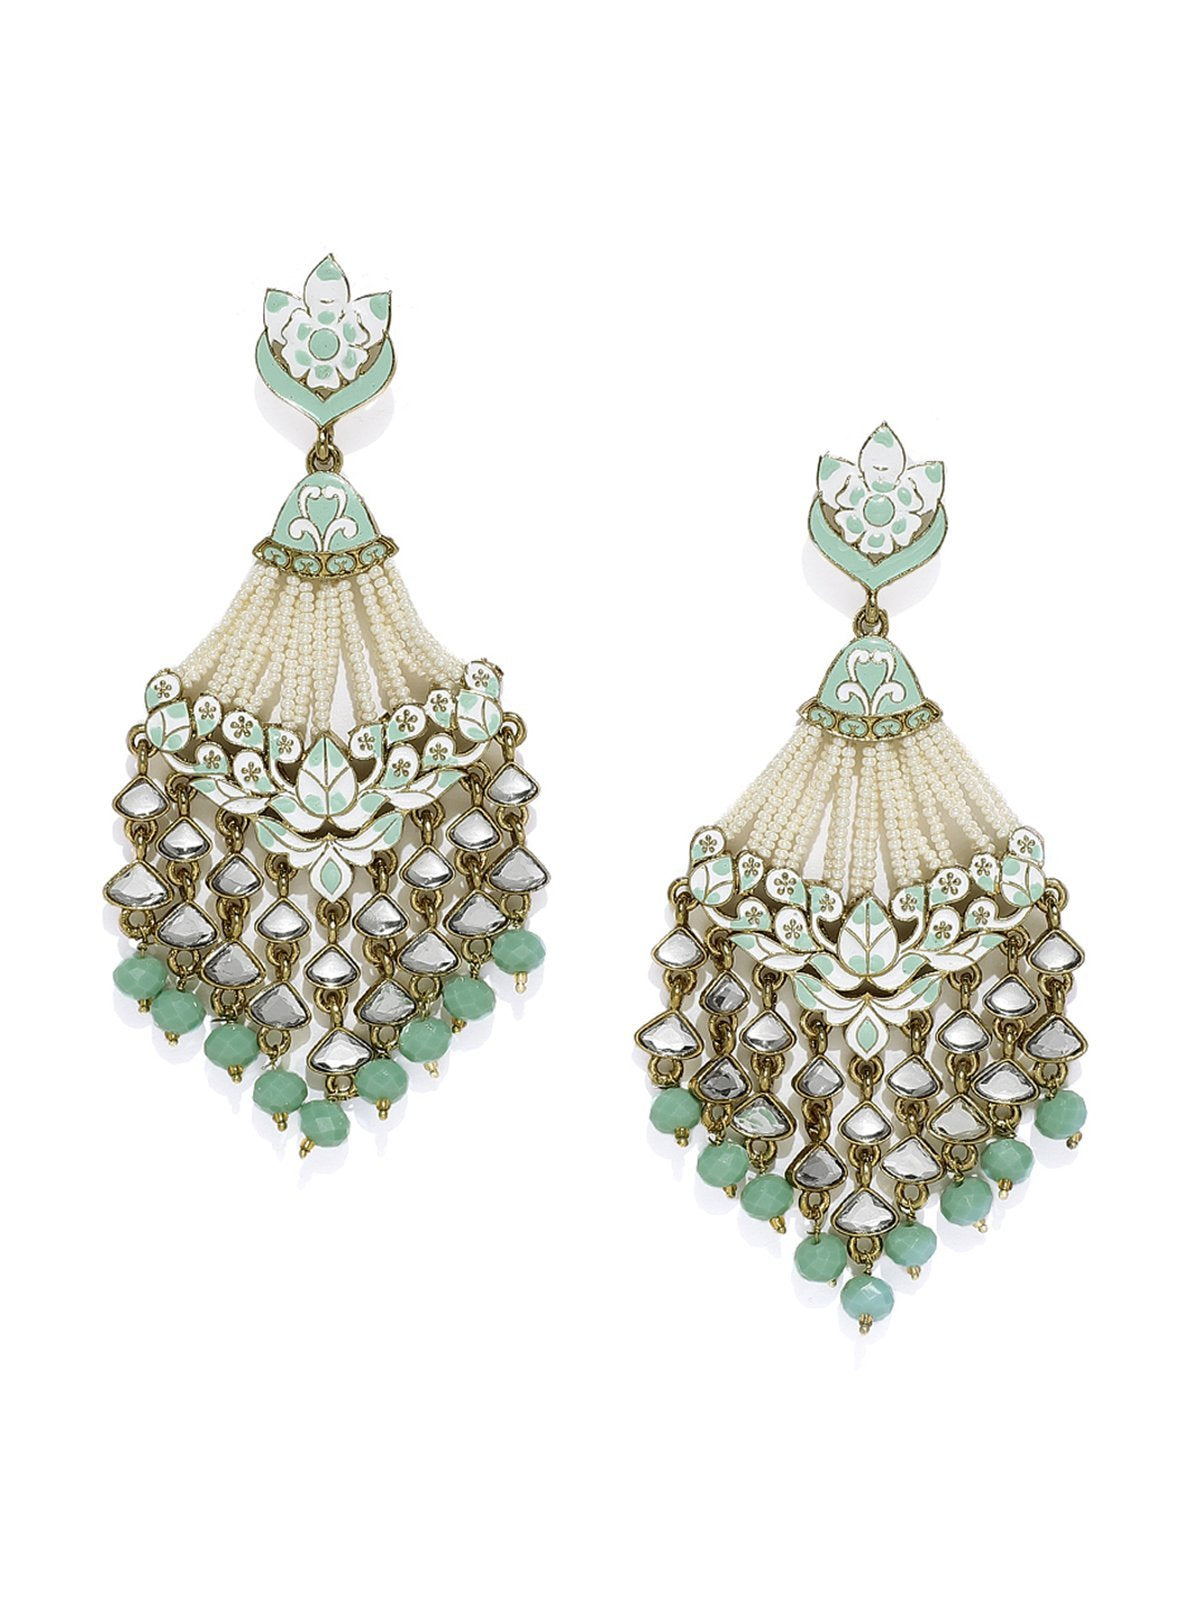 Antique Gold Tone Embellished With Pearls And Meenakari Dangler Earring